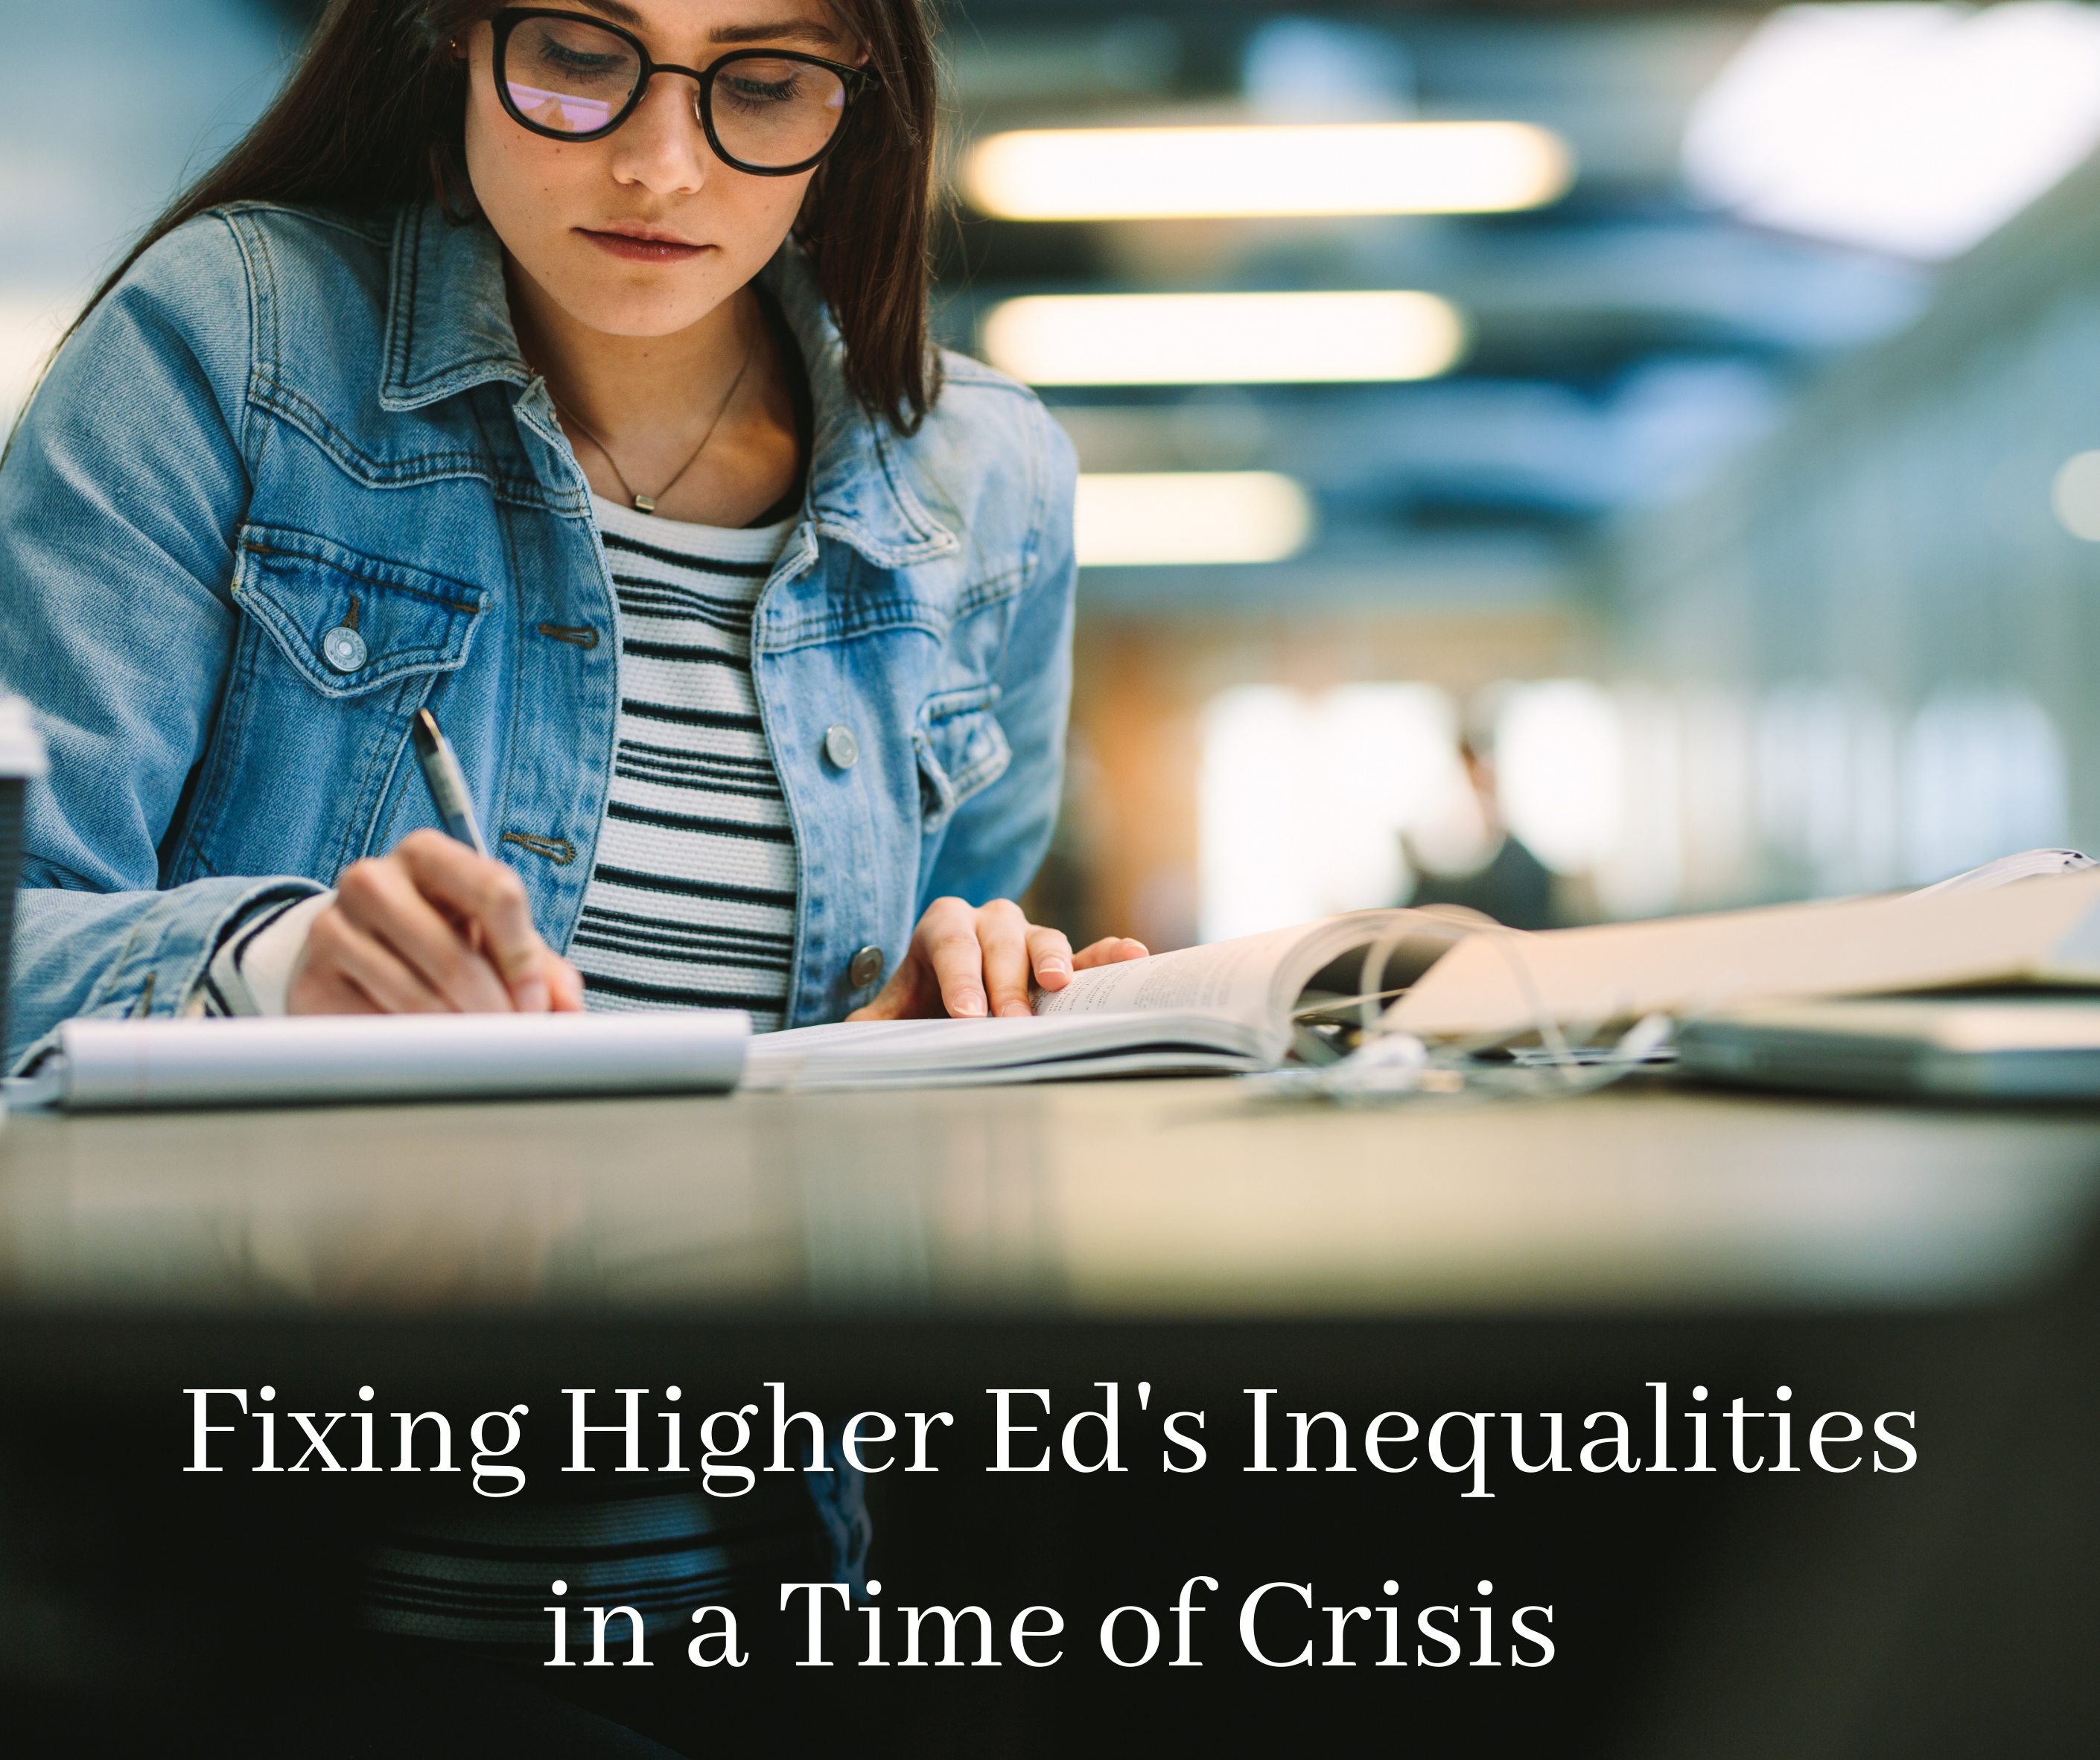 Fixing Higher Education's Inequities in a Time of Crisis